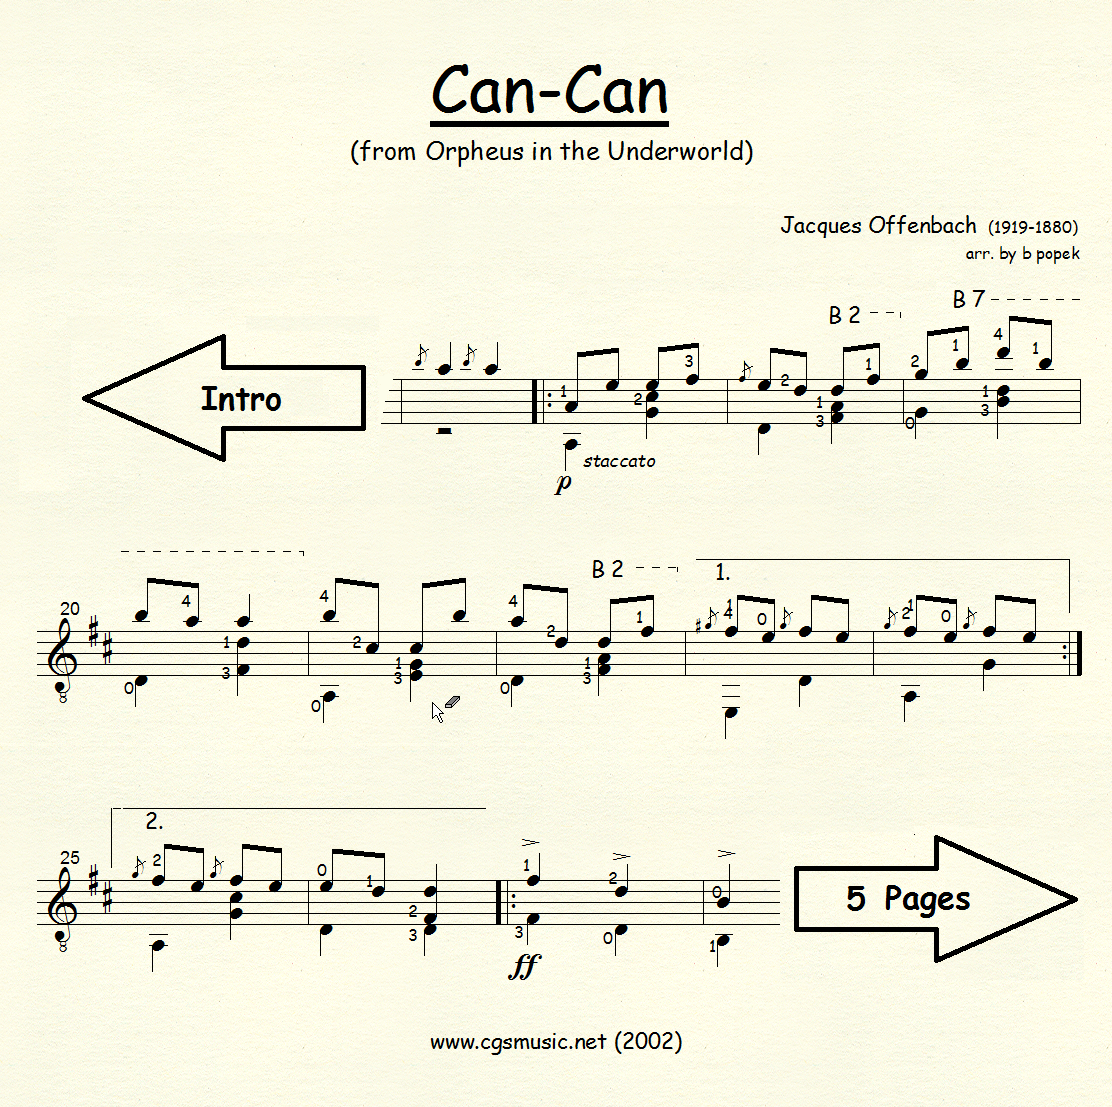 Can-Can (Offenbach) for Classical Guitar in Standard Notation